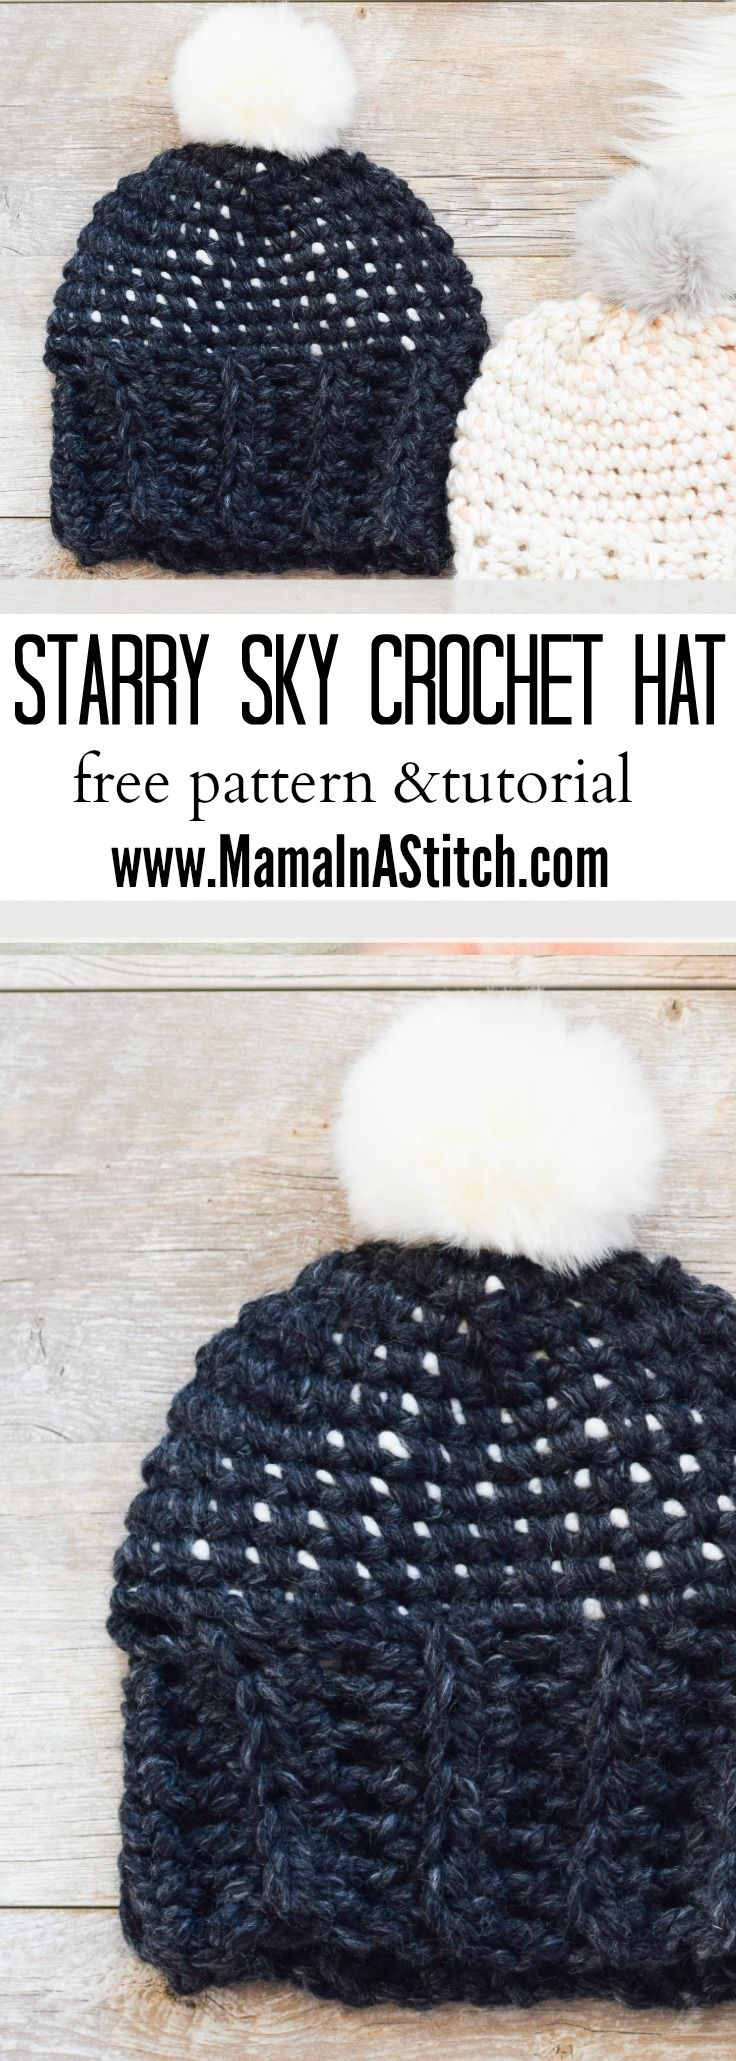 152 best Gorros images on Pinterest | Crocheted hats, Hand crafts ...